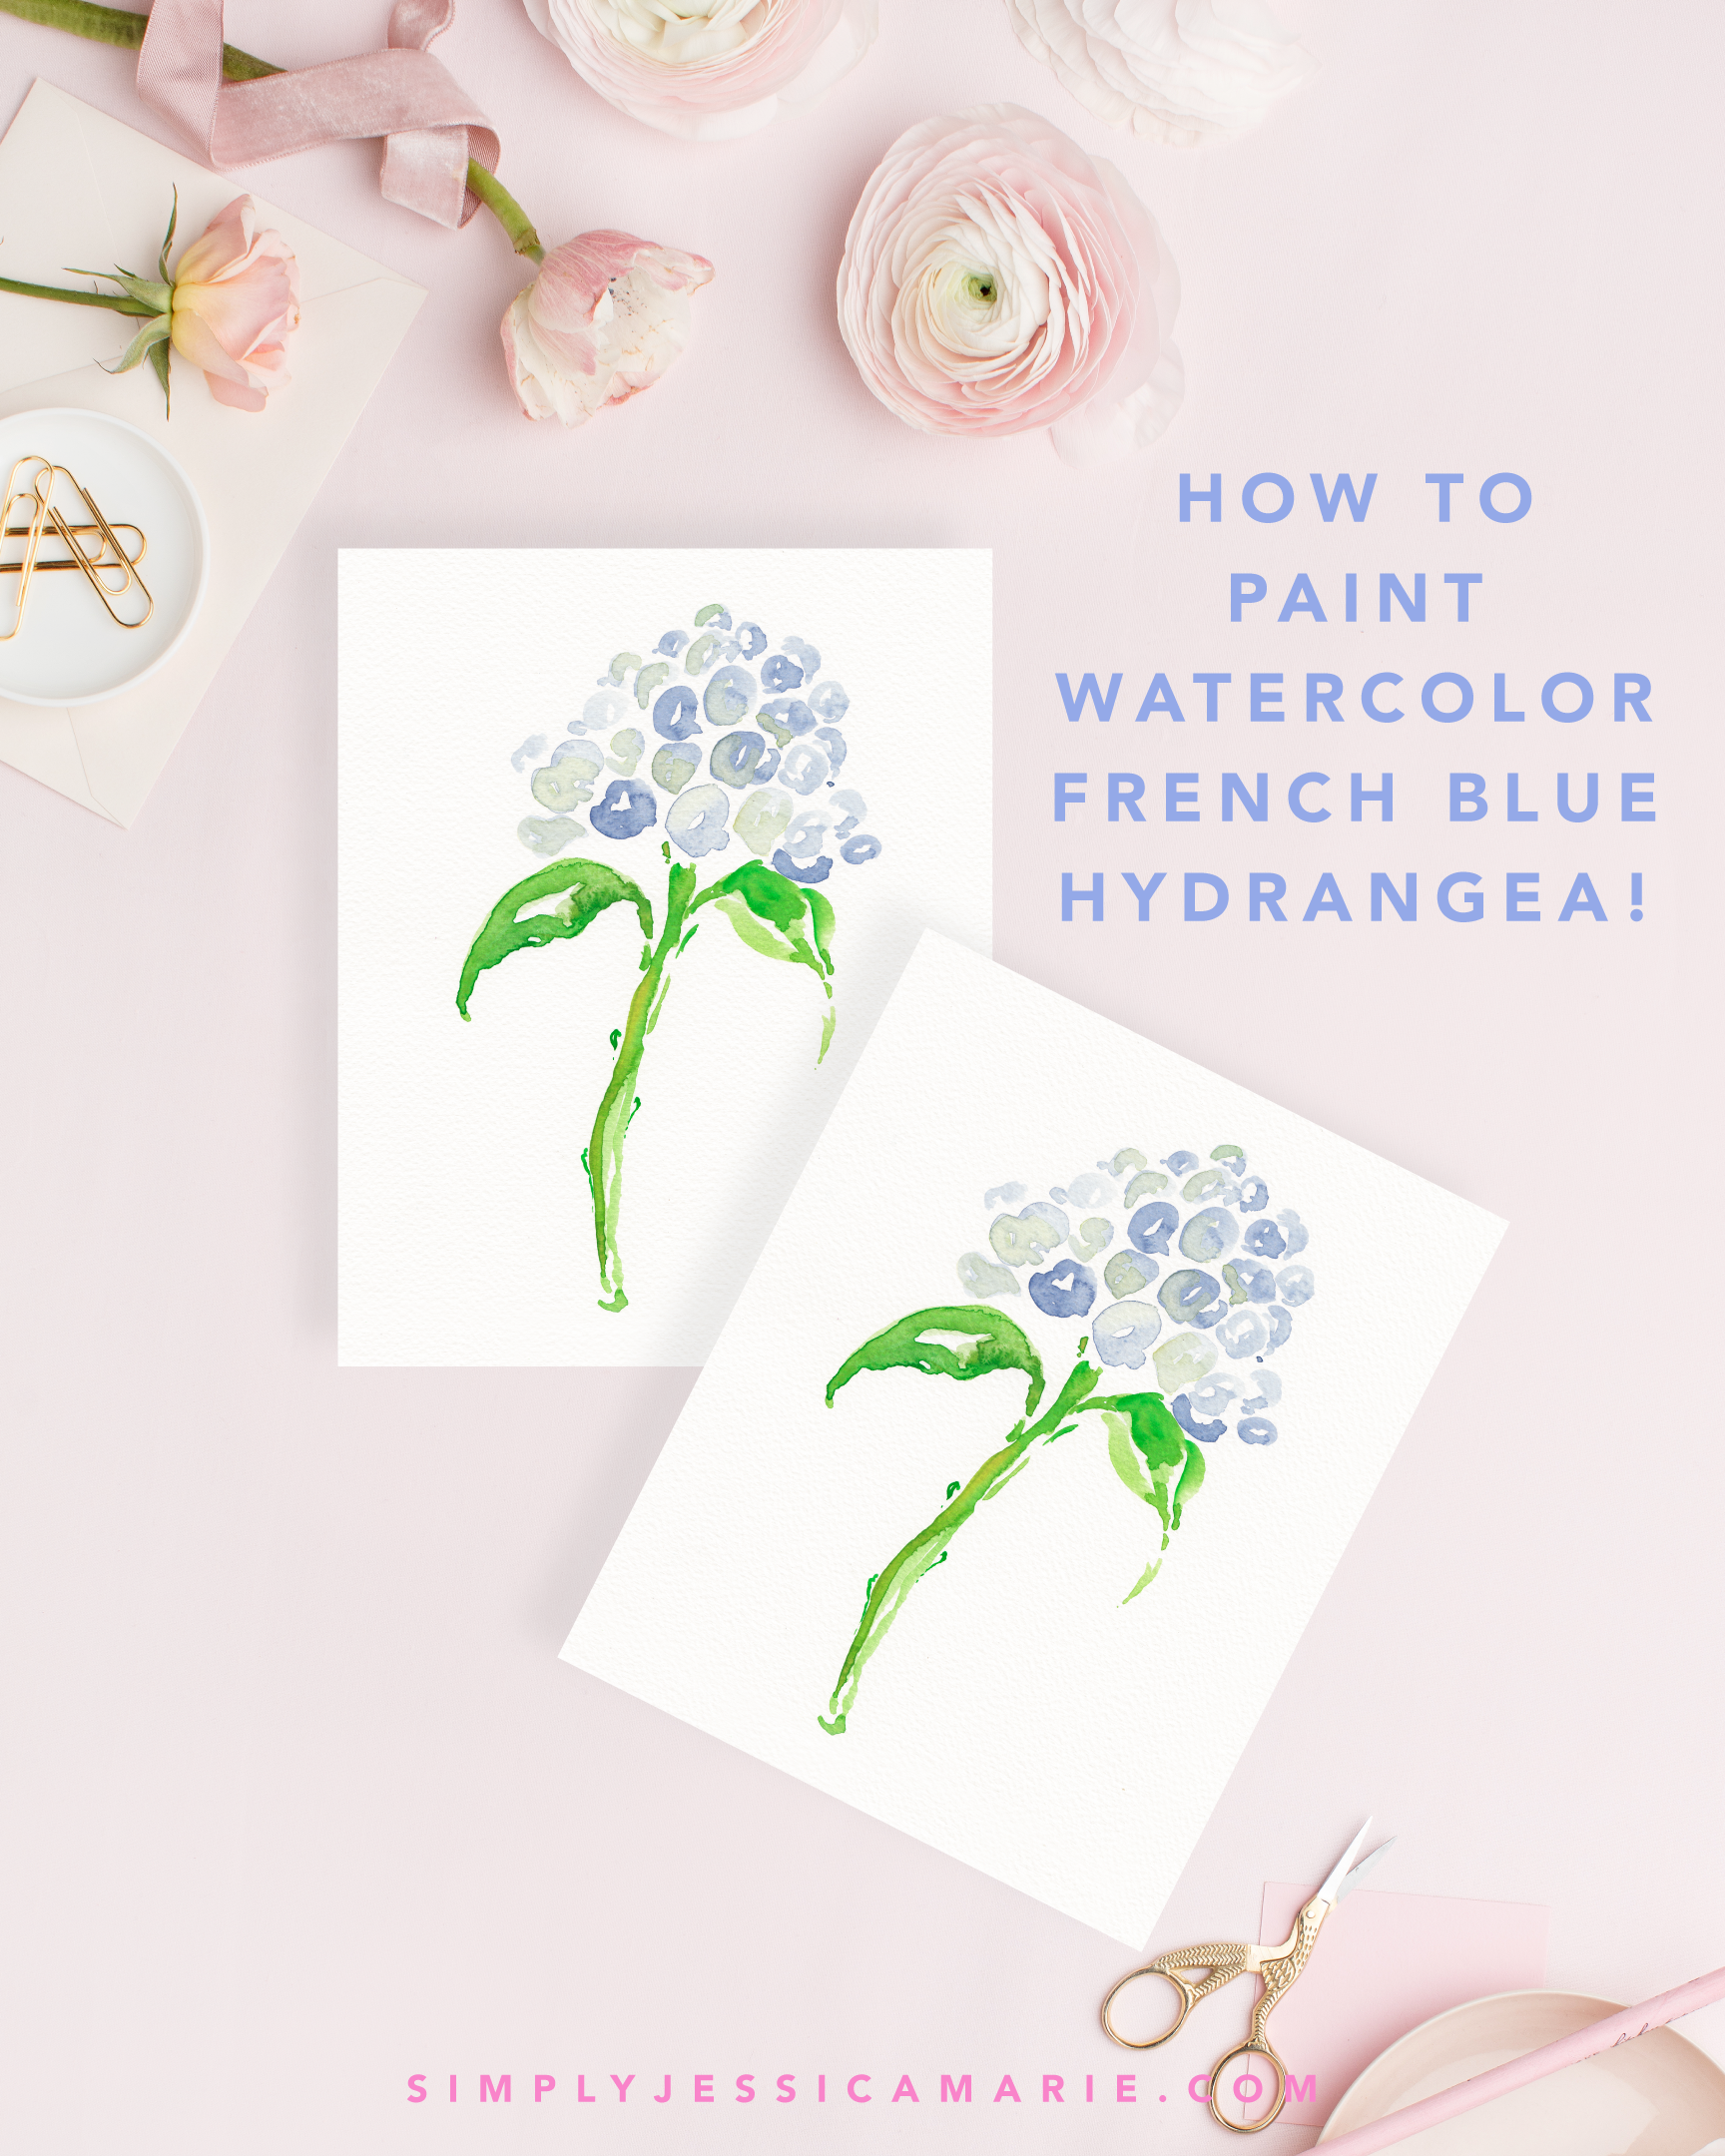 How to paint watercolor French blue hydrangea! Fun and free watercolor videos by Simply Jessica Marie! Learn to mix new colors each week and paint with that color! | SC Stockshop